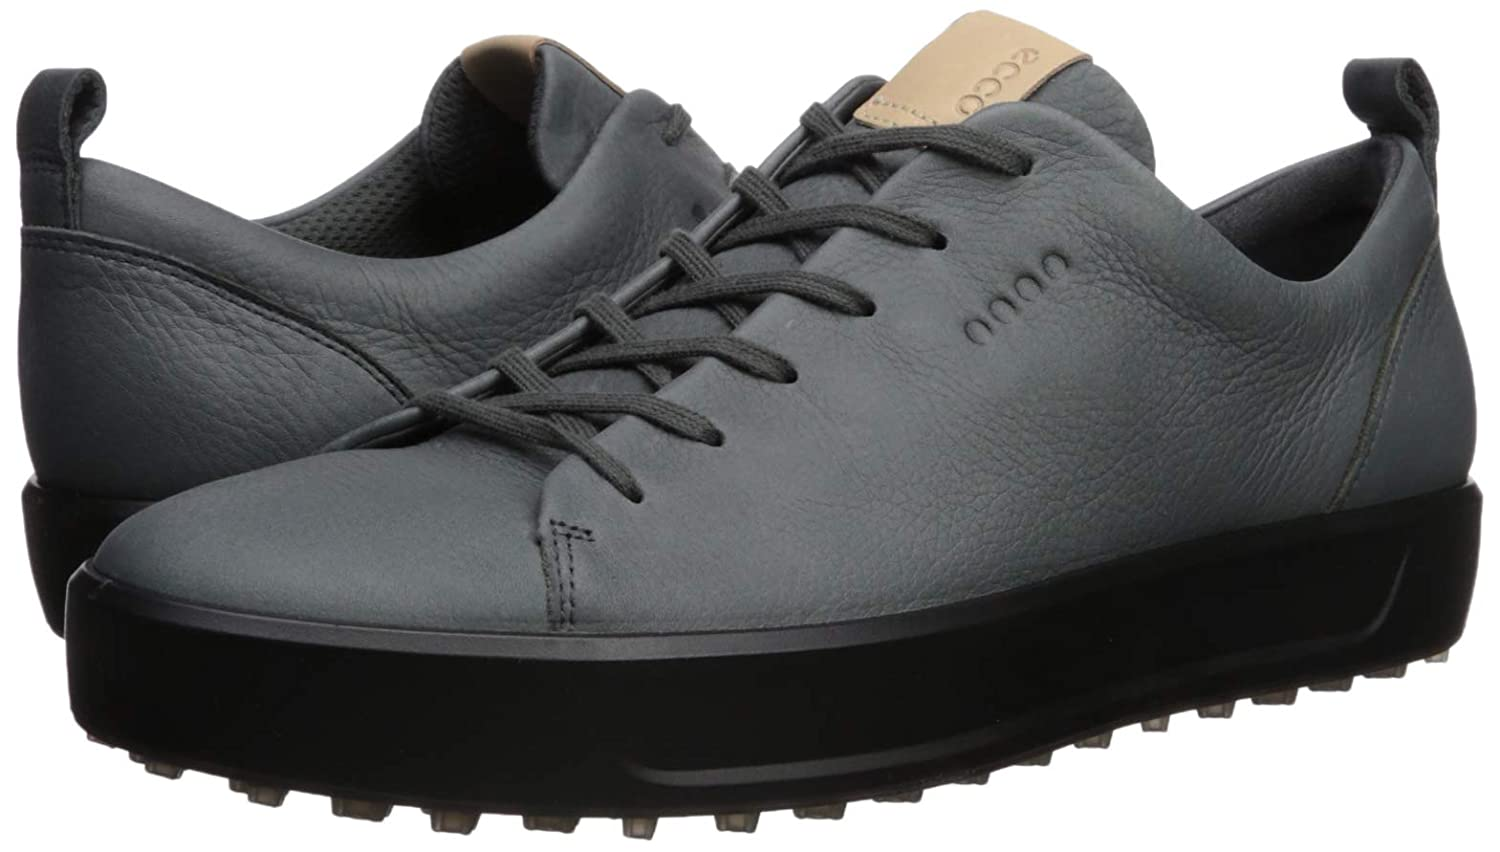 ECCO Golf 2019 Mens Soft HYDROMAX Water Repellent Spikeless